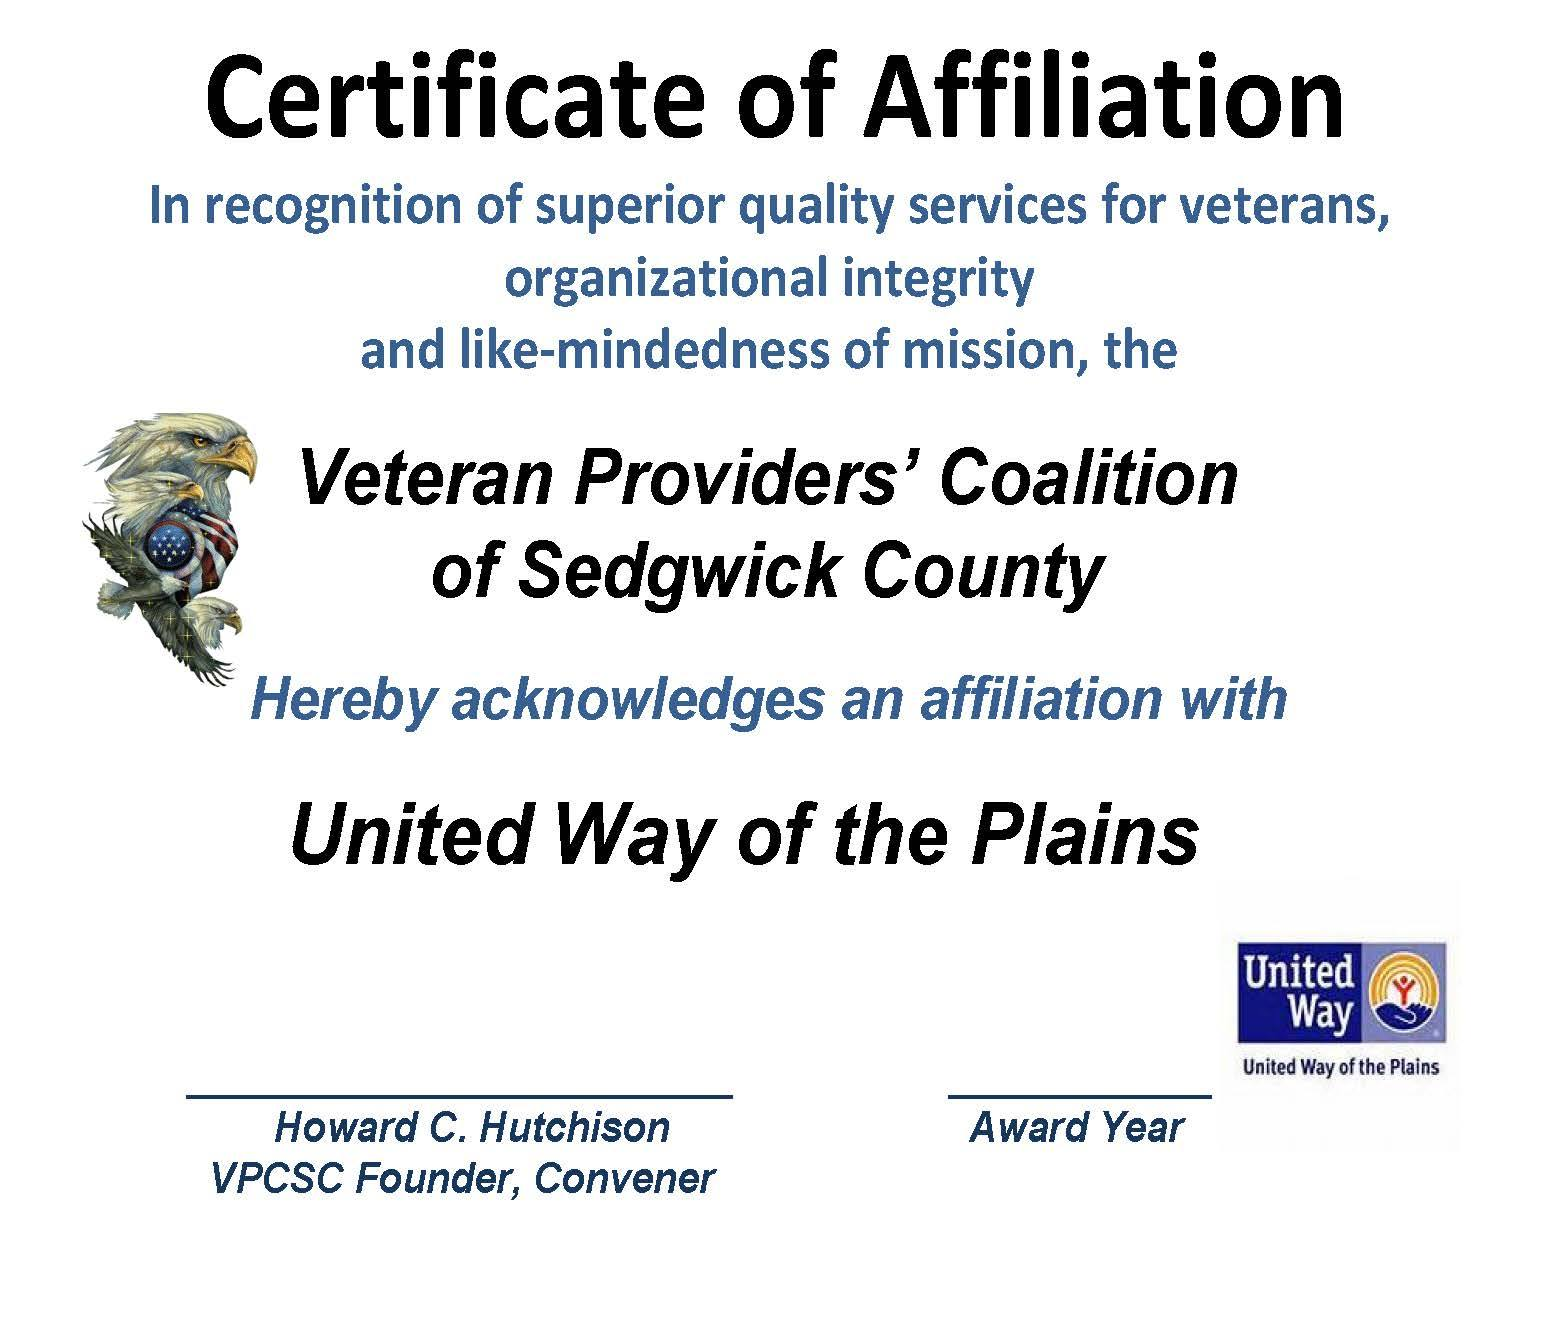 AFFILIATION CERT. UNITED WAY 2015